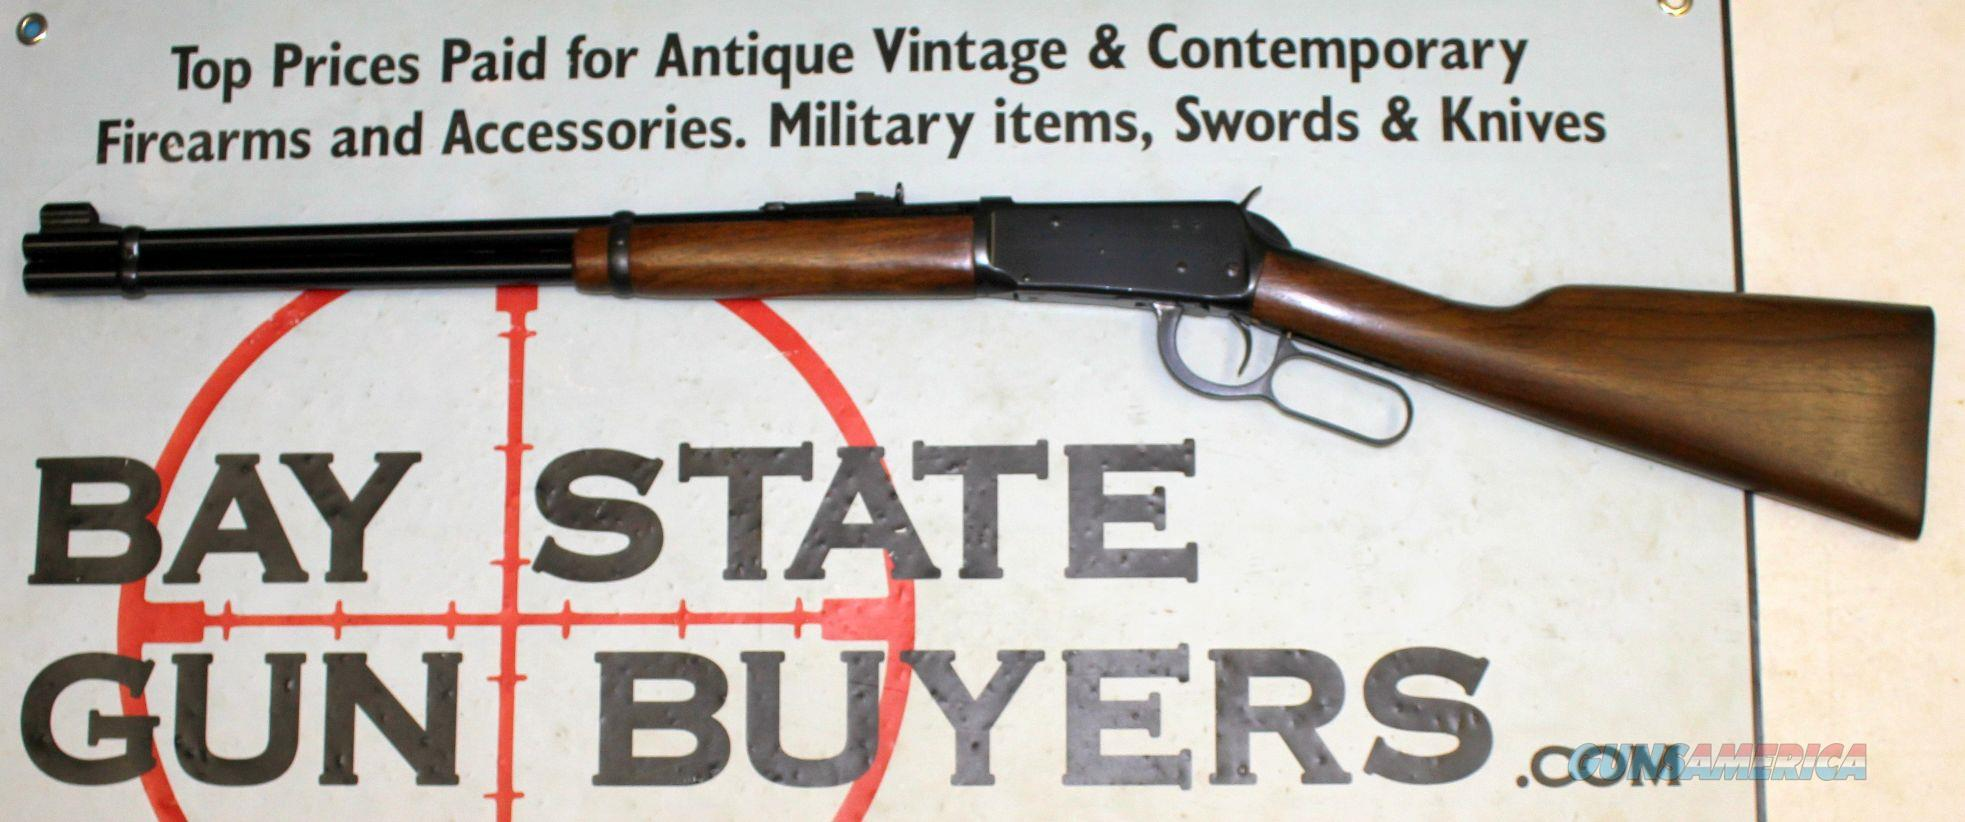 PRE-64 Winchester Model 94 lever action carbine rifle 32 Win Spl. -  1961 manufacture  Guns > Rifles > Winchester Rifles - Modern Lever > Model 94 > Pre-64